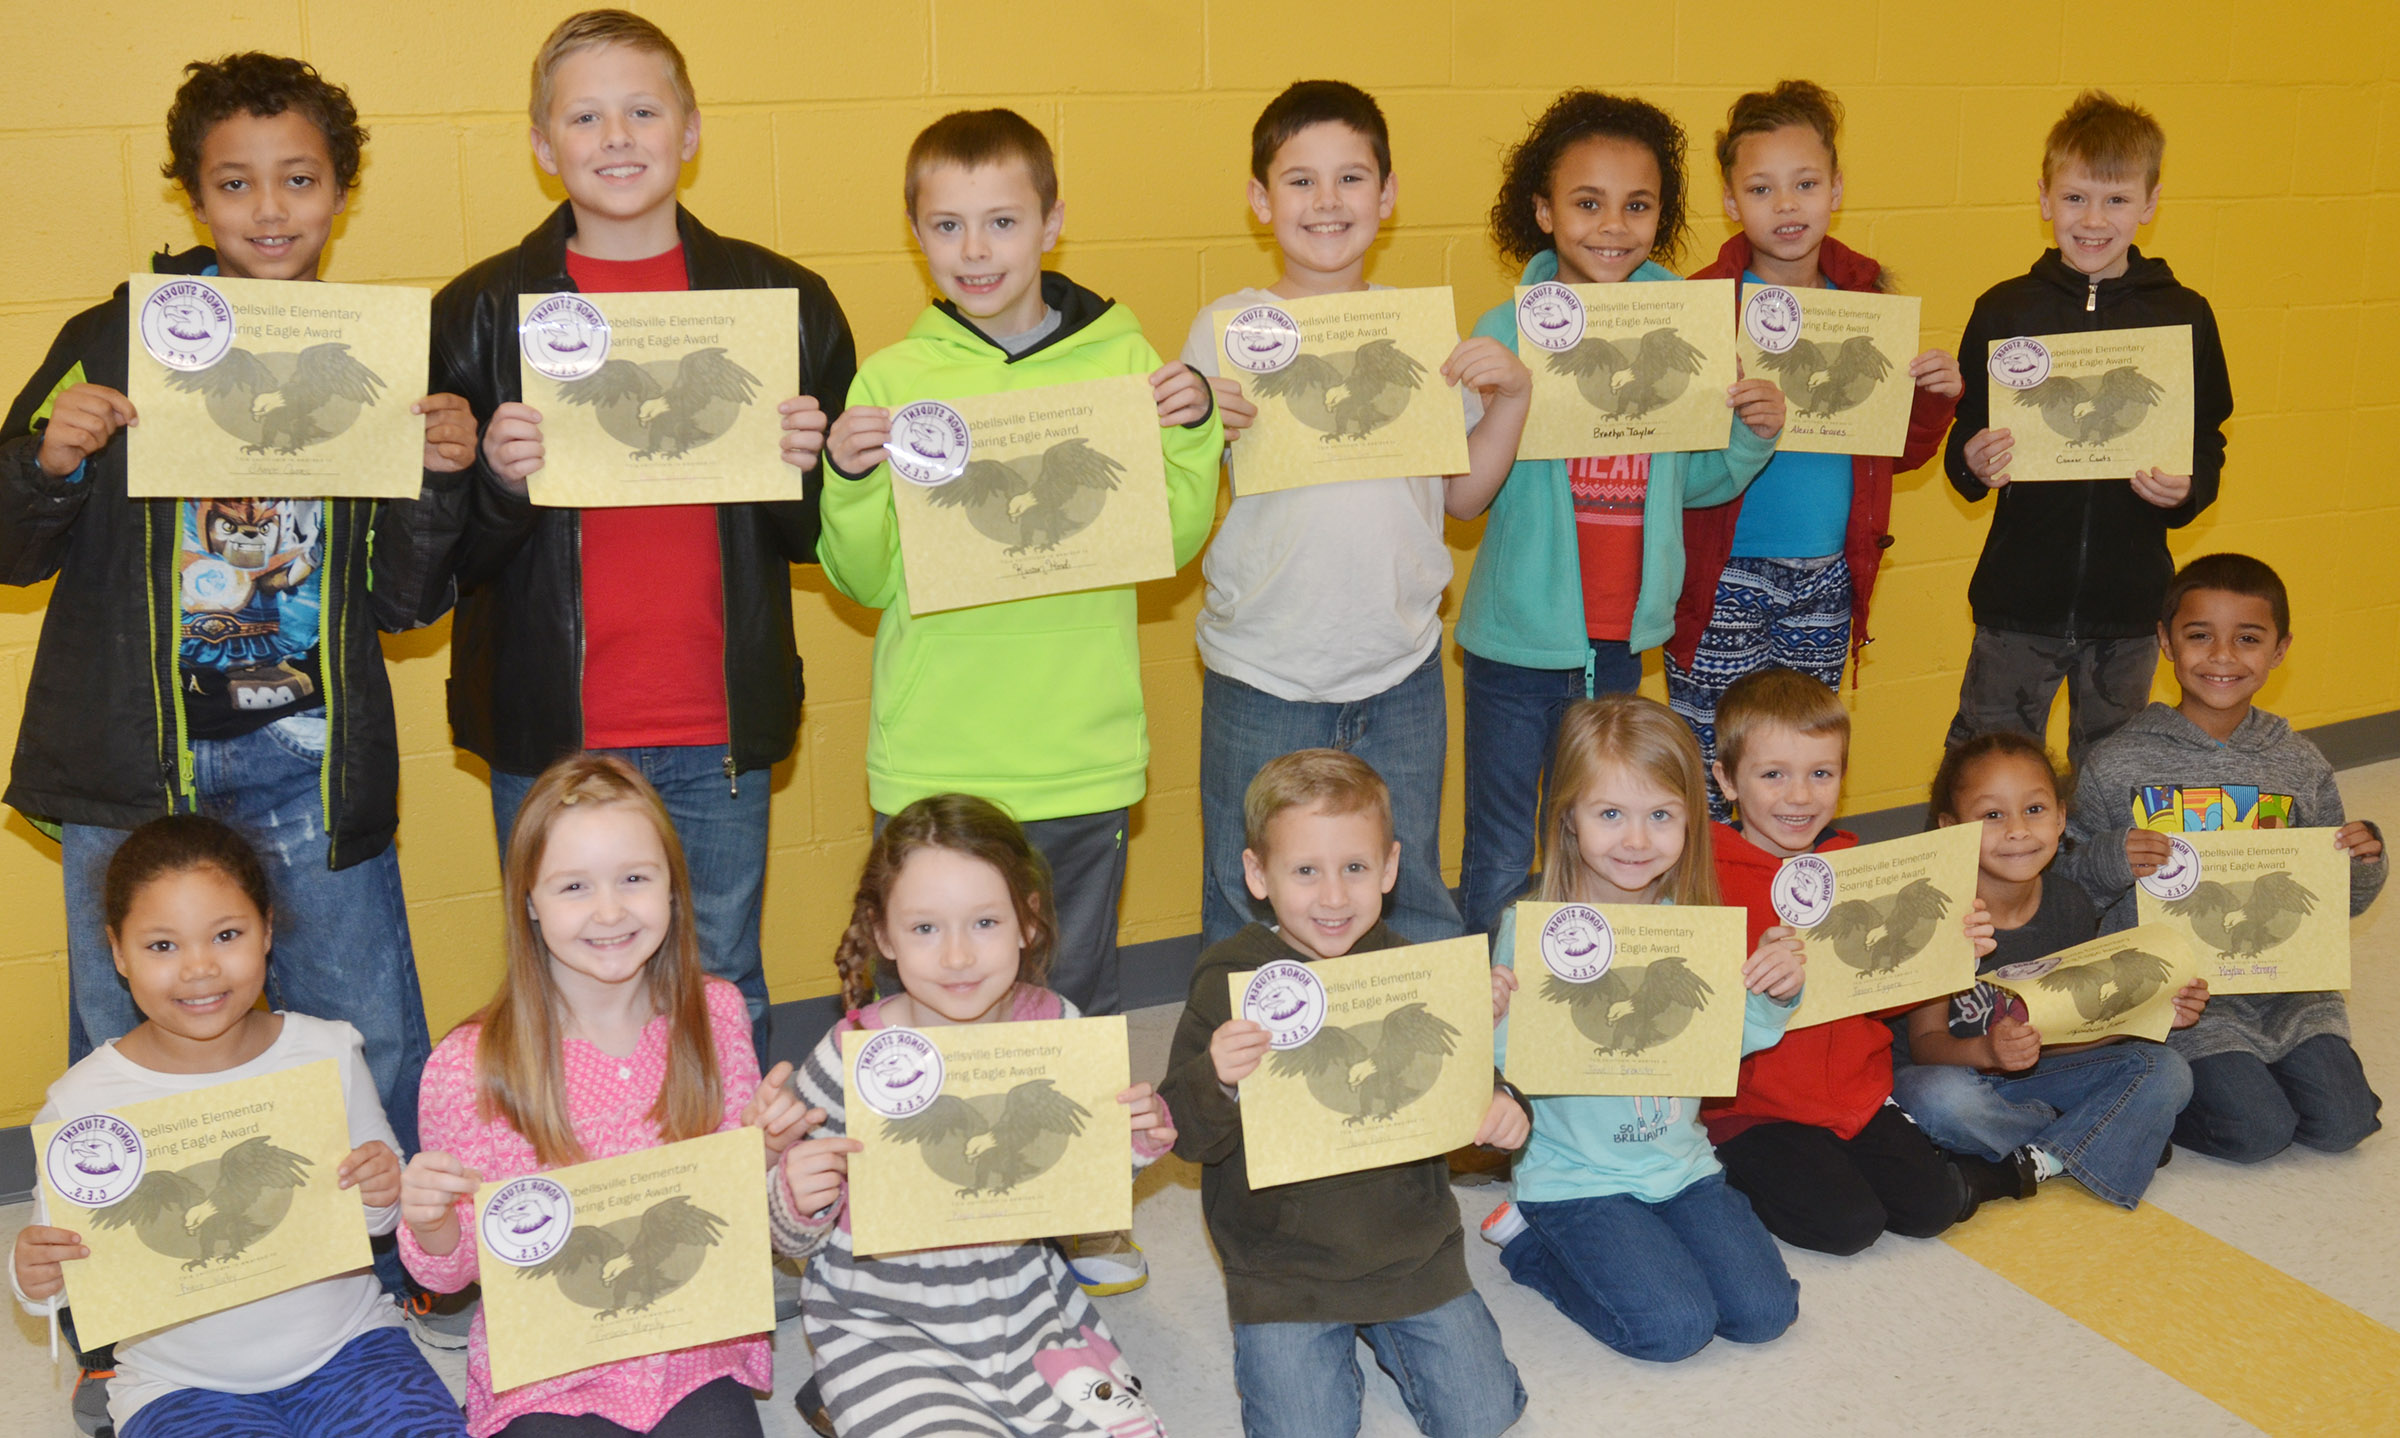 From left, front, are first-graders Briana Wooley, Gracie Murphy and Kaylee Gayheart, kindergarteners Gavin Paris, Jewell Brewster, Jason Eggers and Elyzabeth Fisher and second-grader Keylan Strong. Back, third-grader Chance Owens, second-grader Evan Lockridge, third-grader Keaton Hord, second-graders Damien Clark and Braelyn Taylor and third-graders Alexis Graves and Connor Coots. Absent from the photo is first-grader Aaron Floyd.